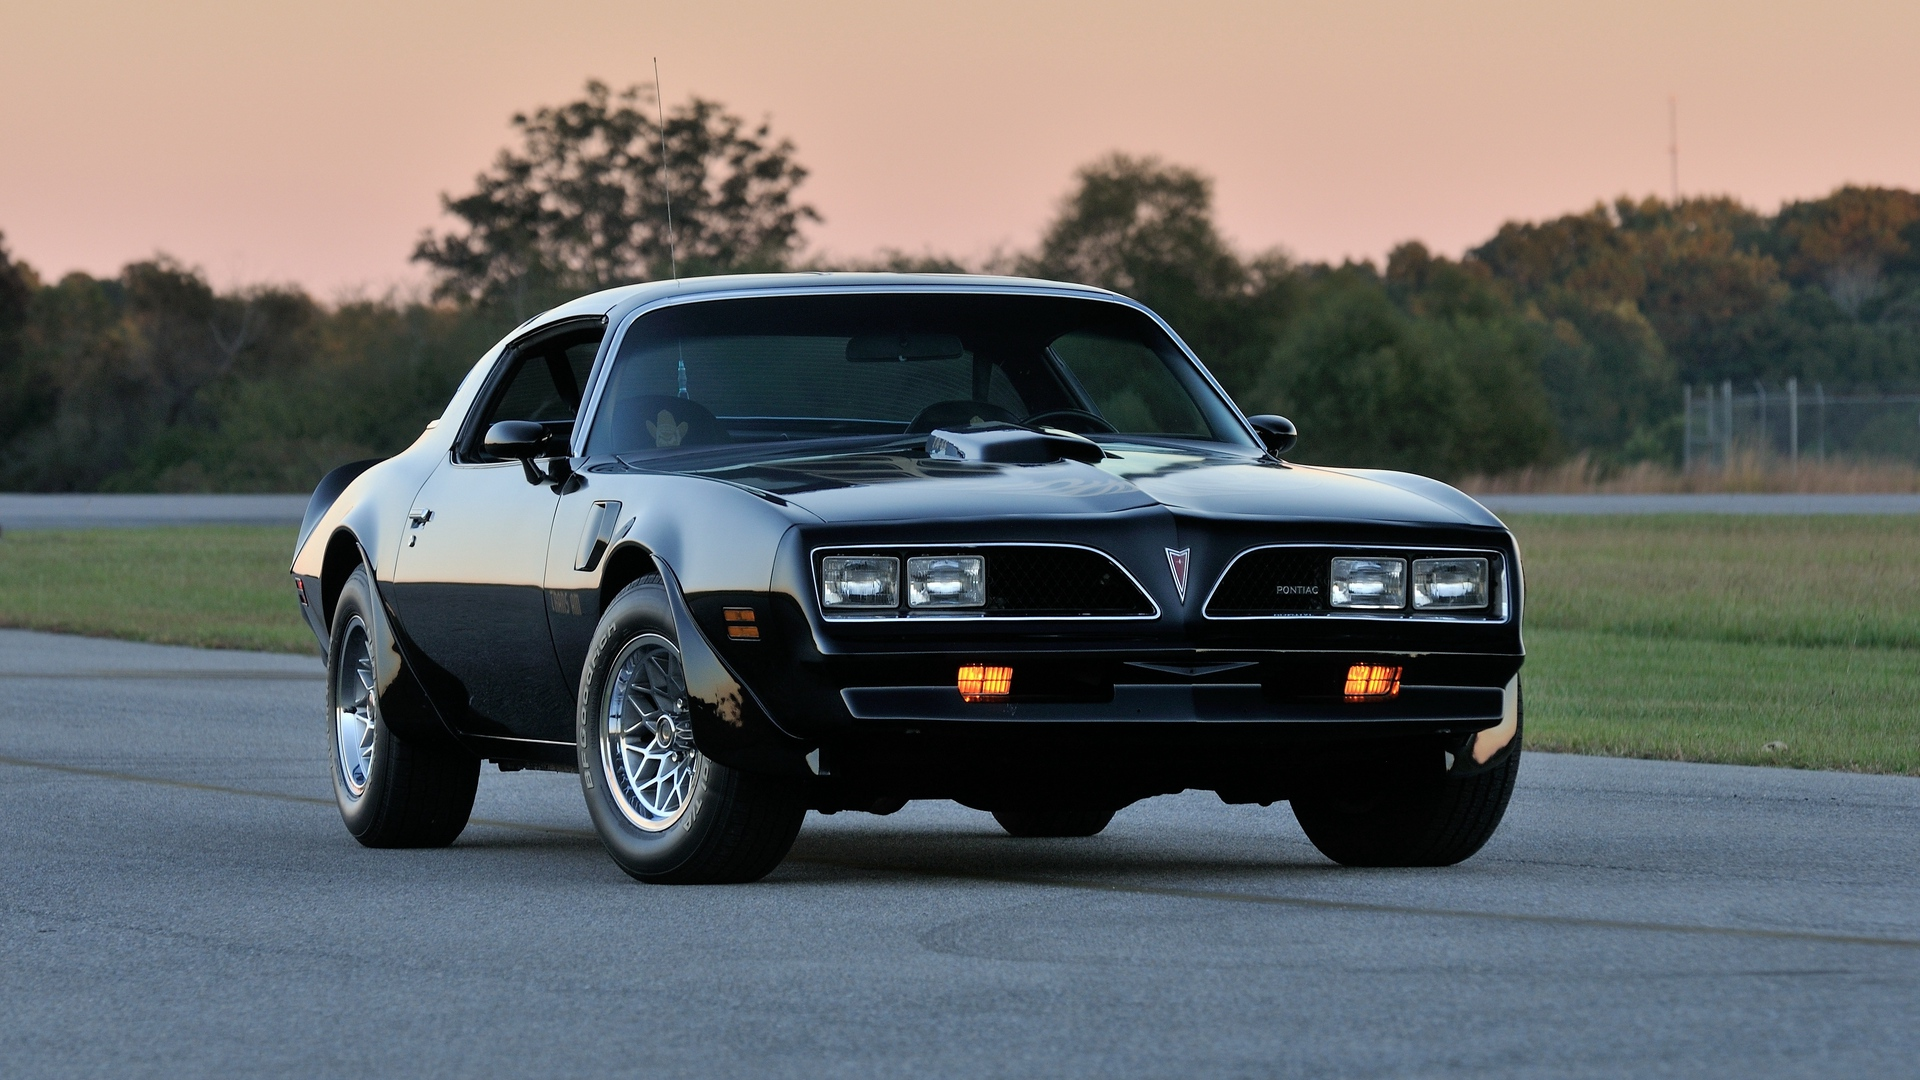 Pontiac Firebird Trans Am WS6 4K HD Desktop Wallpaper The Big 1920x1080